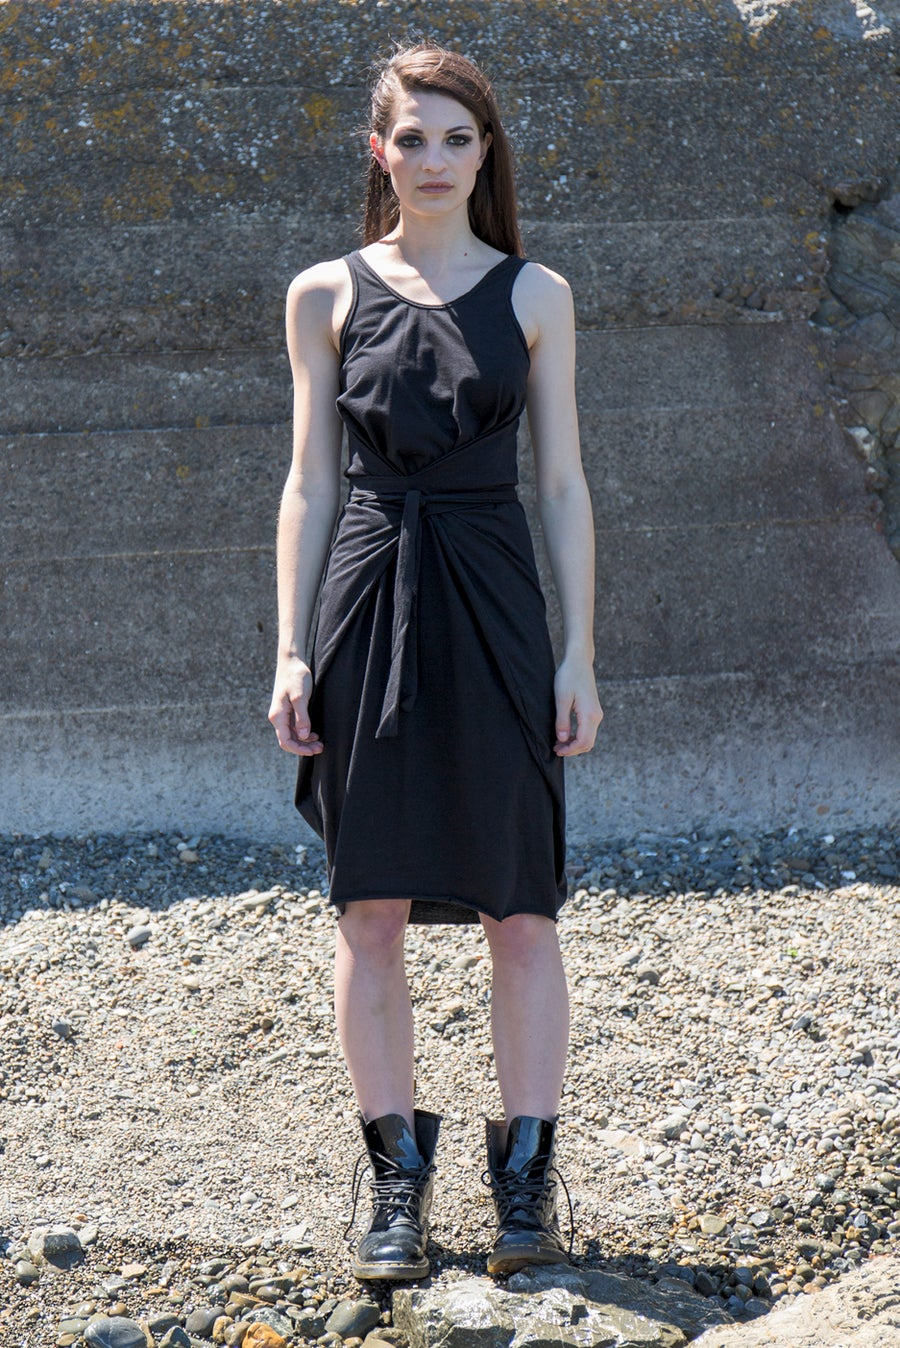 Image of The Summer Ribb Dress - Organic Black Cotton